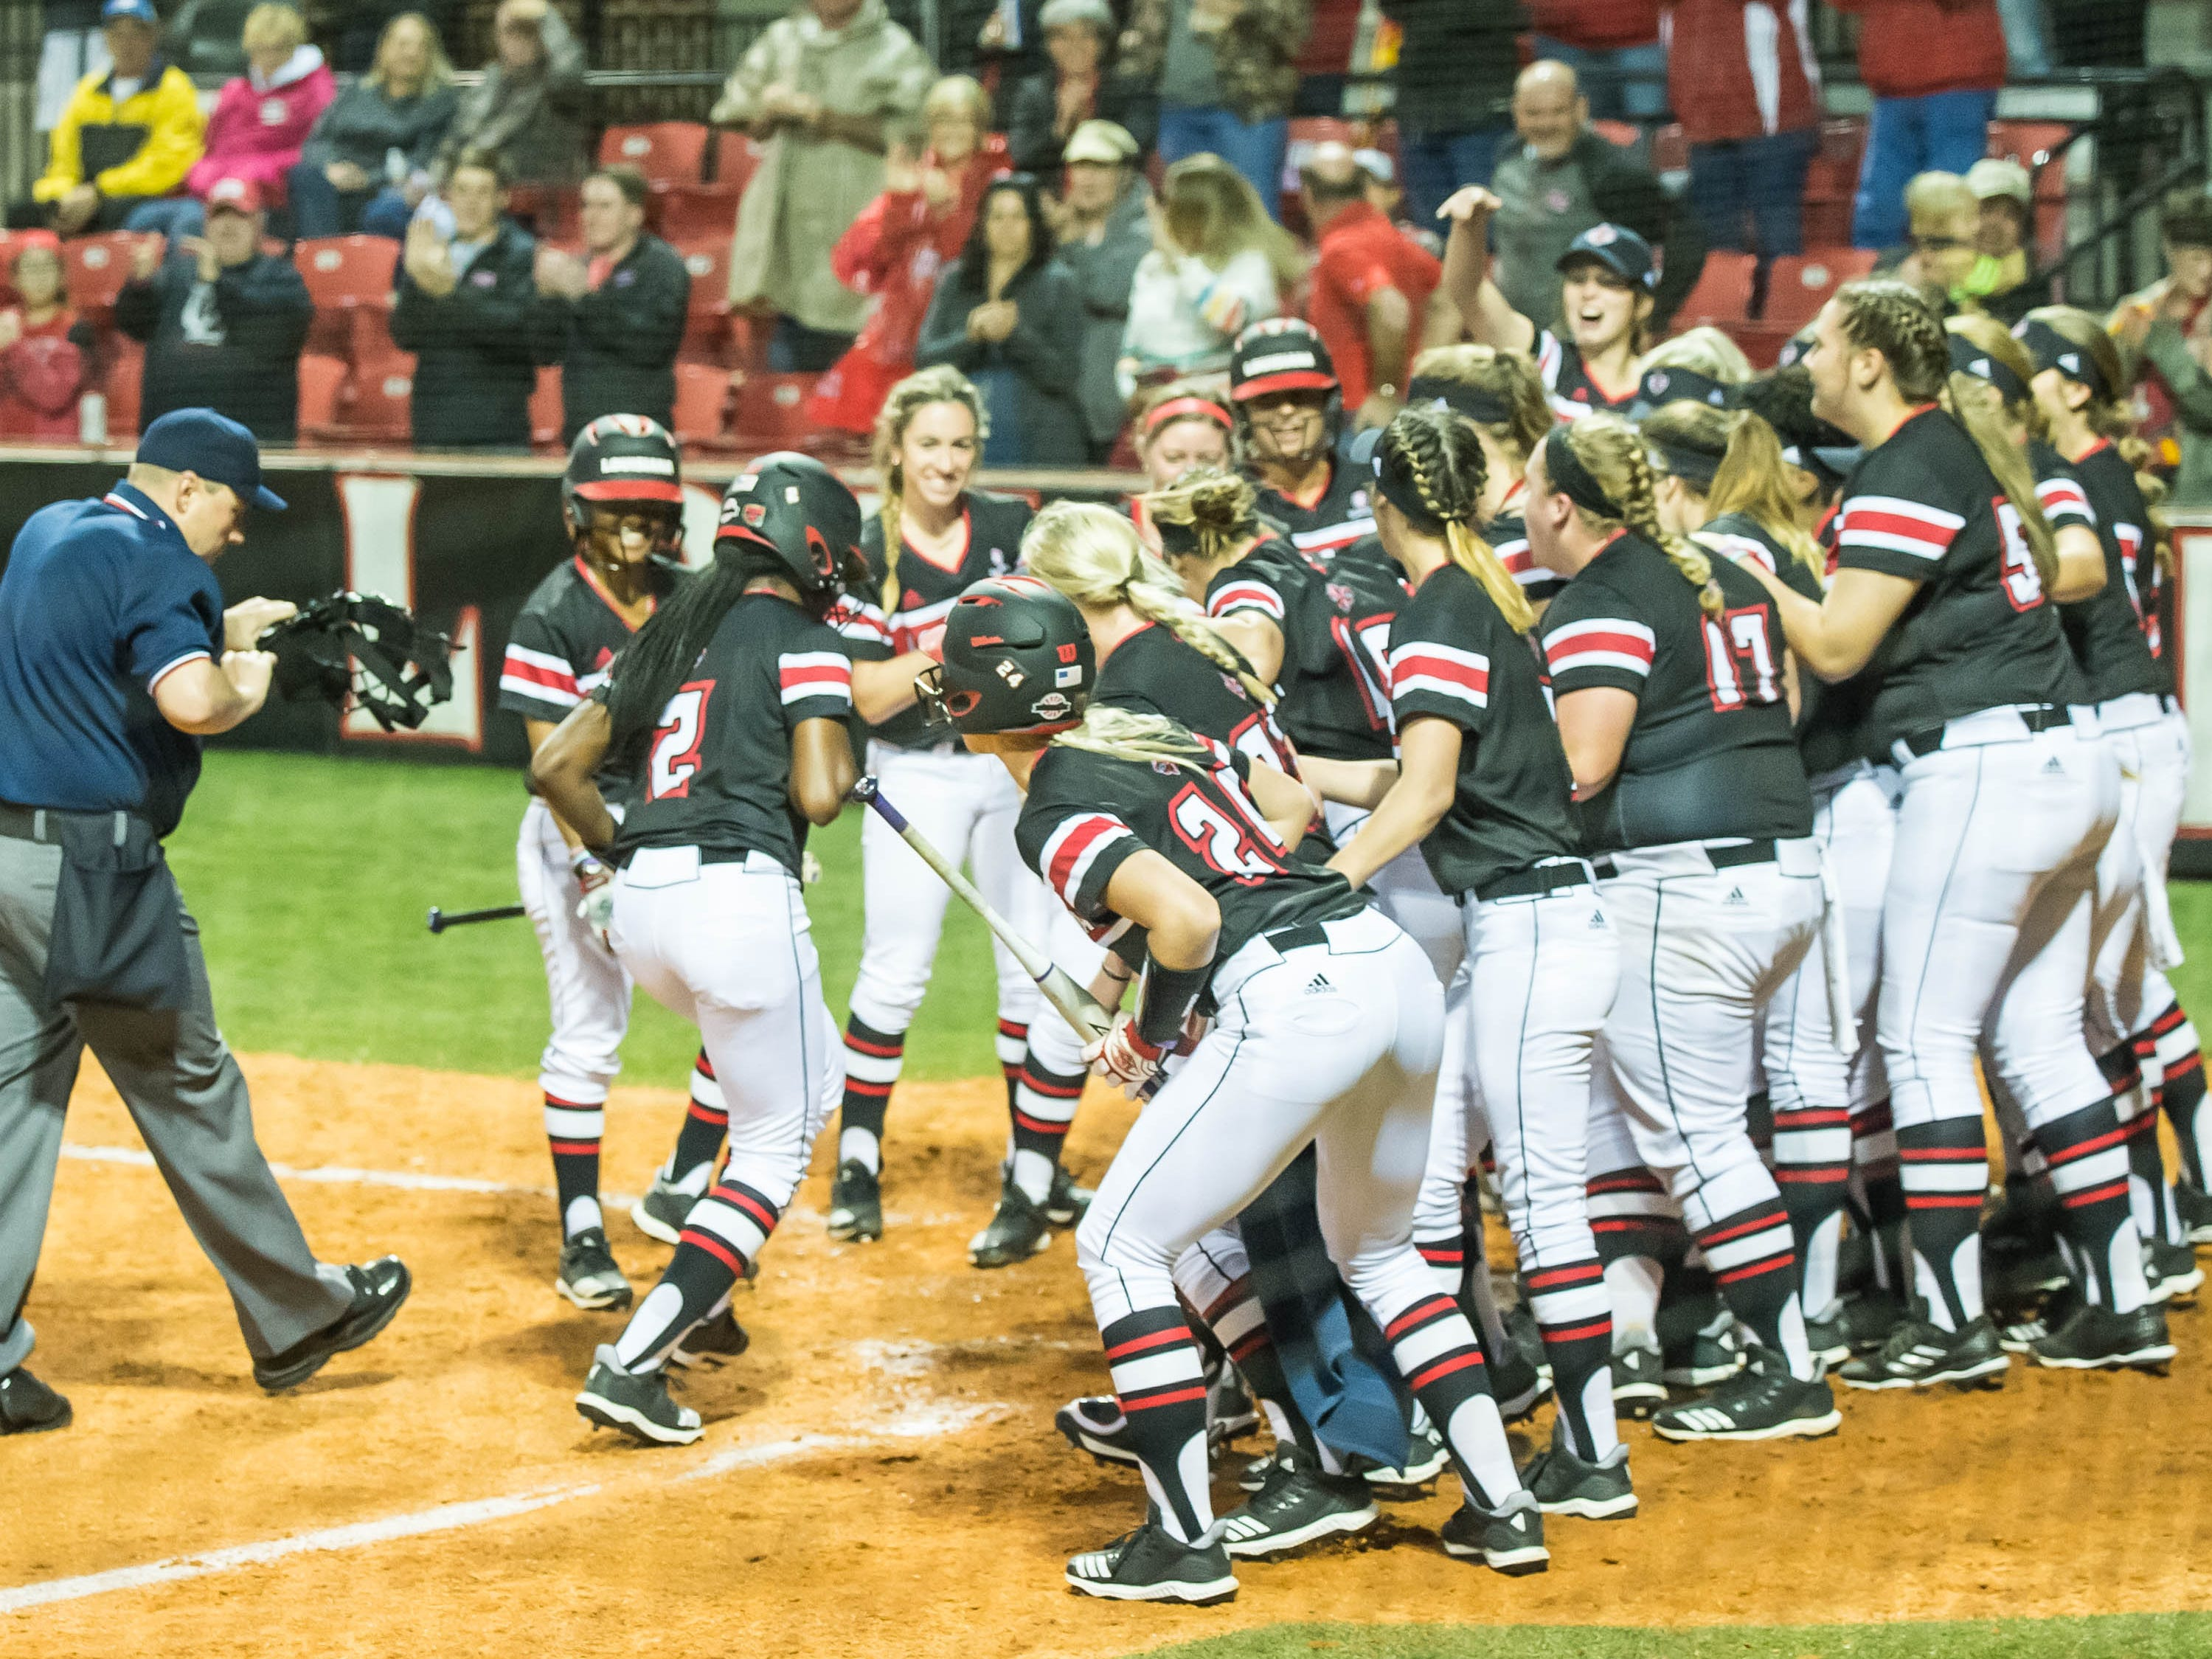 The UL Ragin' Cajuns welcome Raina O'Neal (2) back to home plate after hitting the Cajuns' first home run as the Ragin' Cajuns play Fordham in the opening game of the 2019 softball season at Lamson Park on Thursday, Feb. 7, 2019.